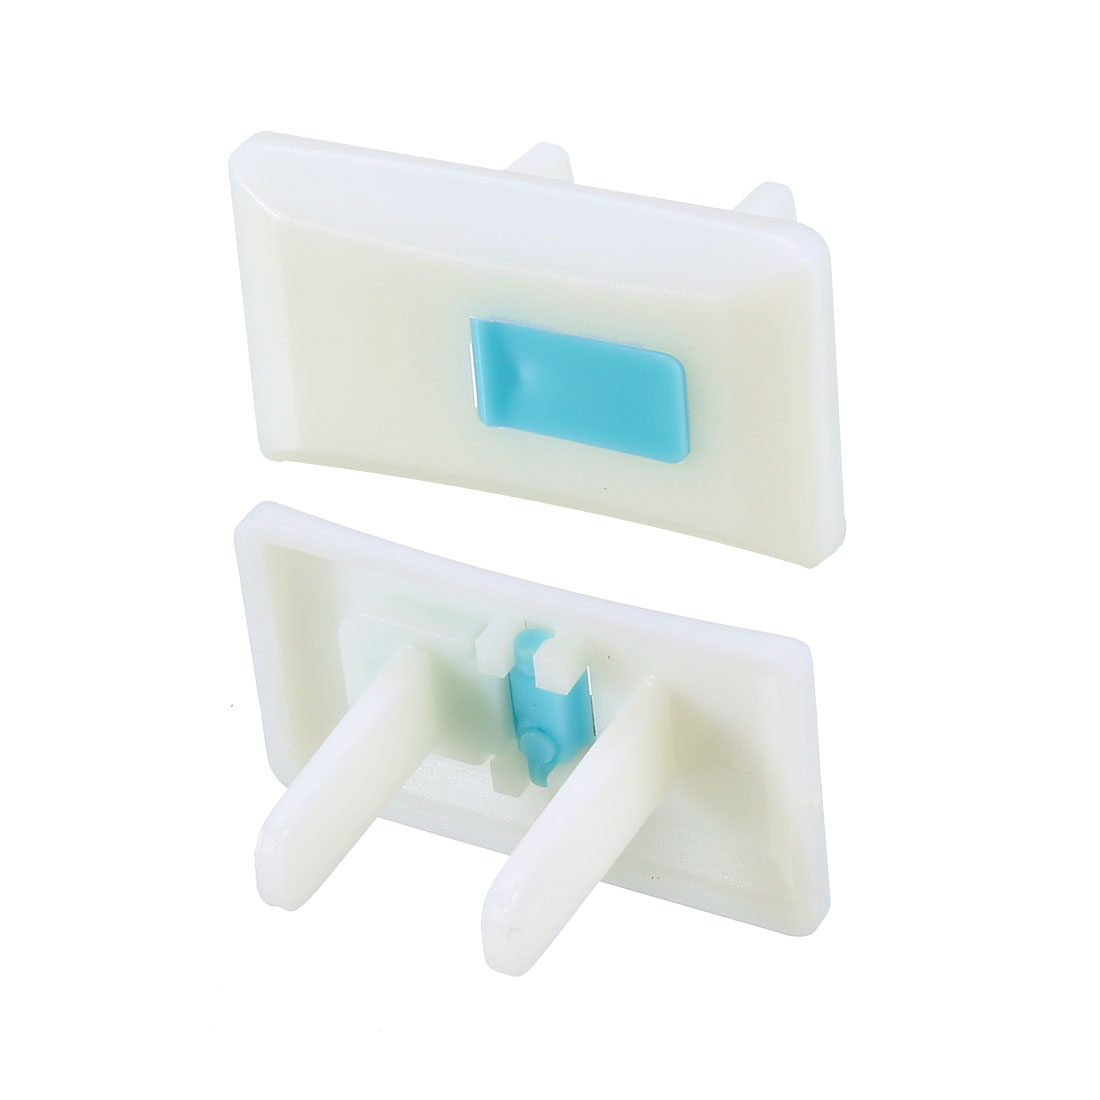 US Stand Power Socket Covers Durable Electrical Protector Cap Blue 30 Pcs